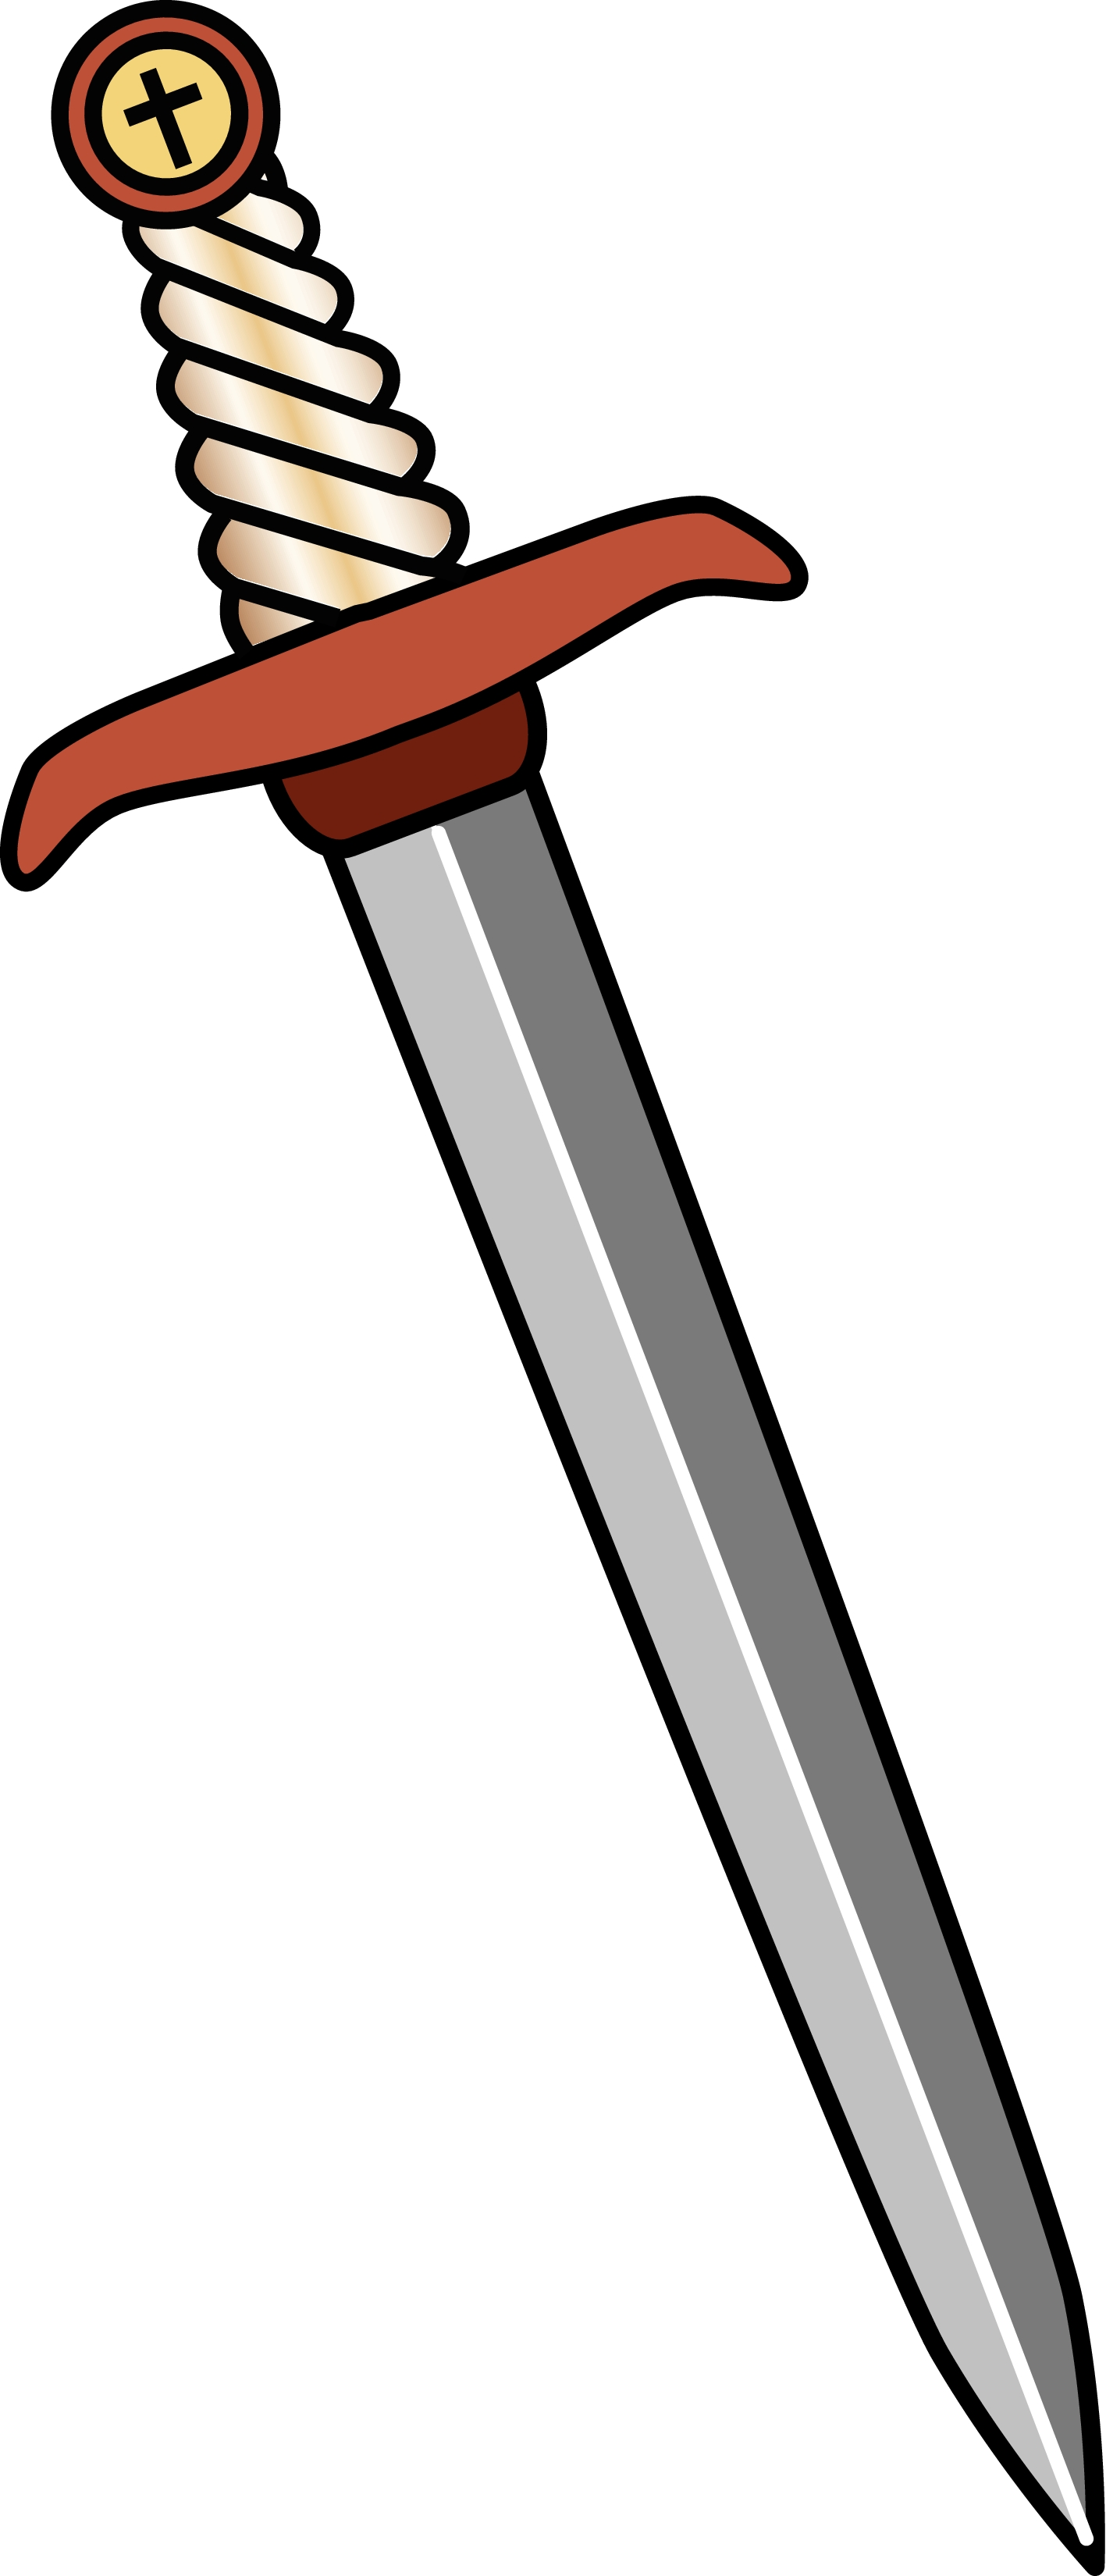 clipart sword at getdrawings com free for personal use clipart rh getdrawings com clip art word 2016 cliparts word 2016